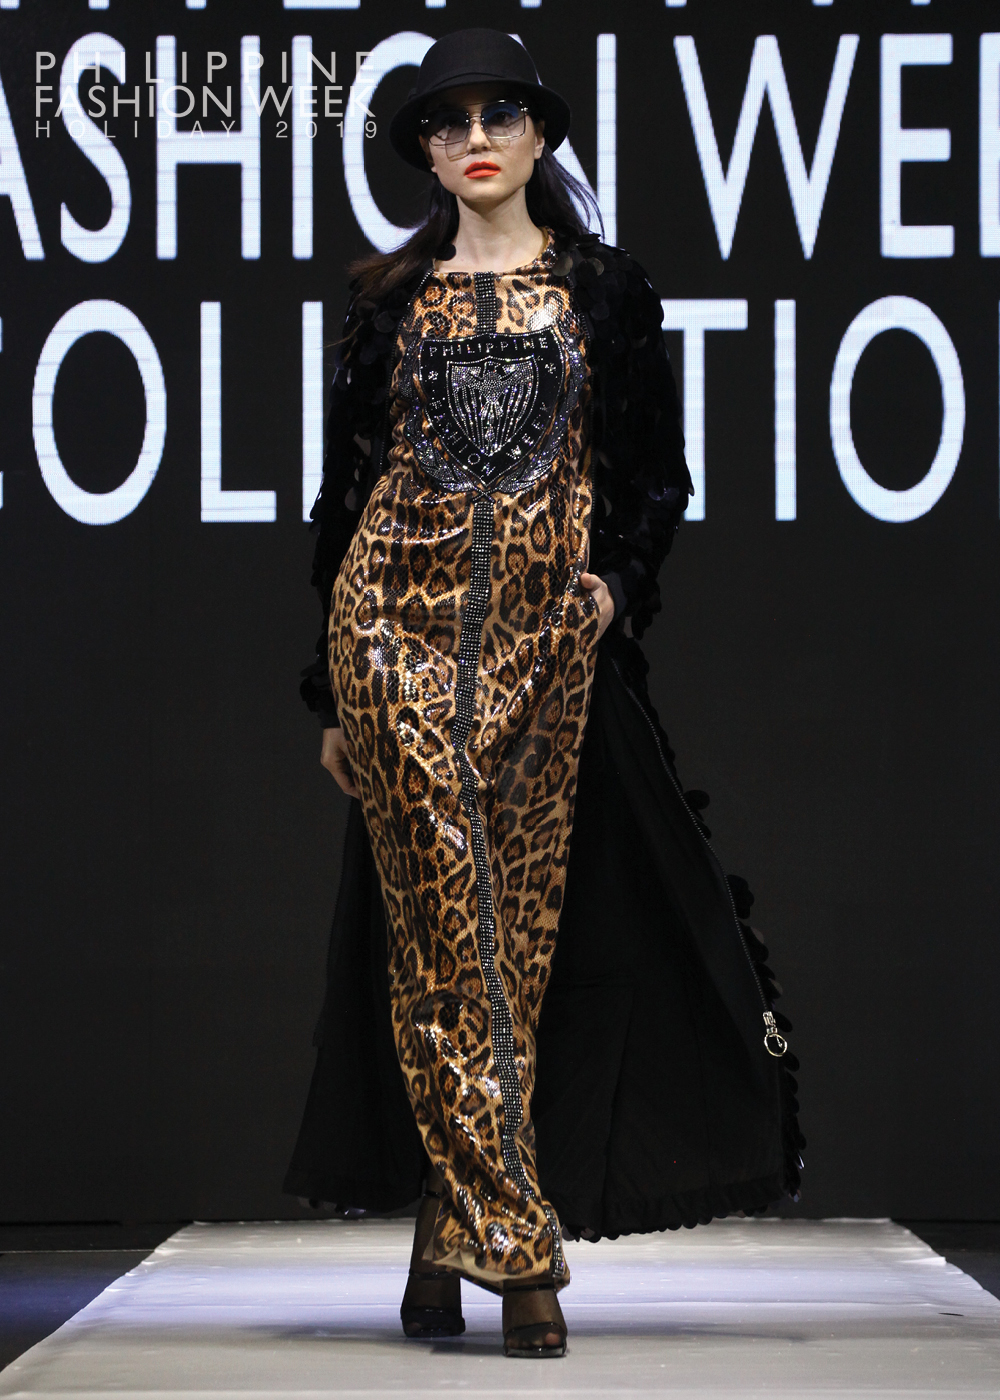 PhFW_collection show26.jpg